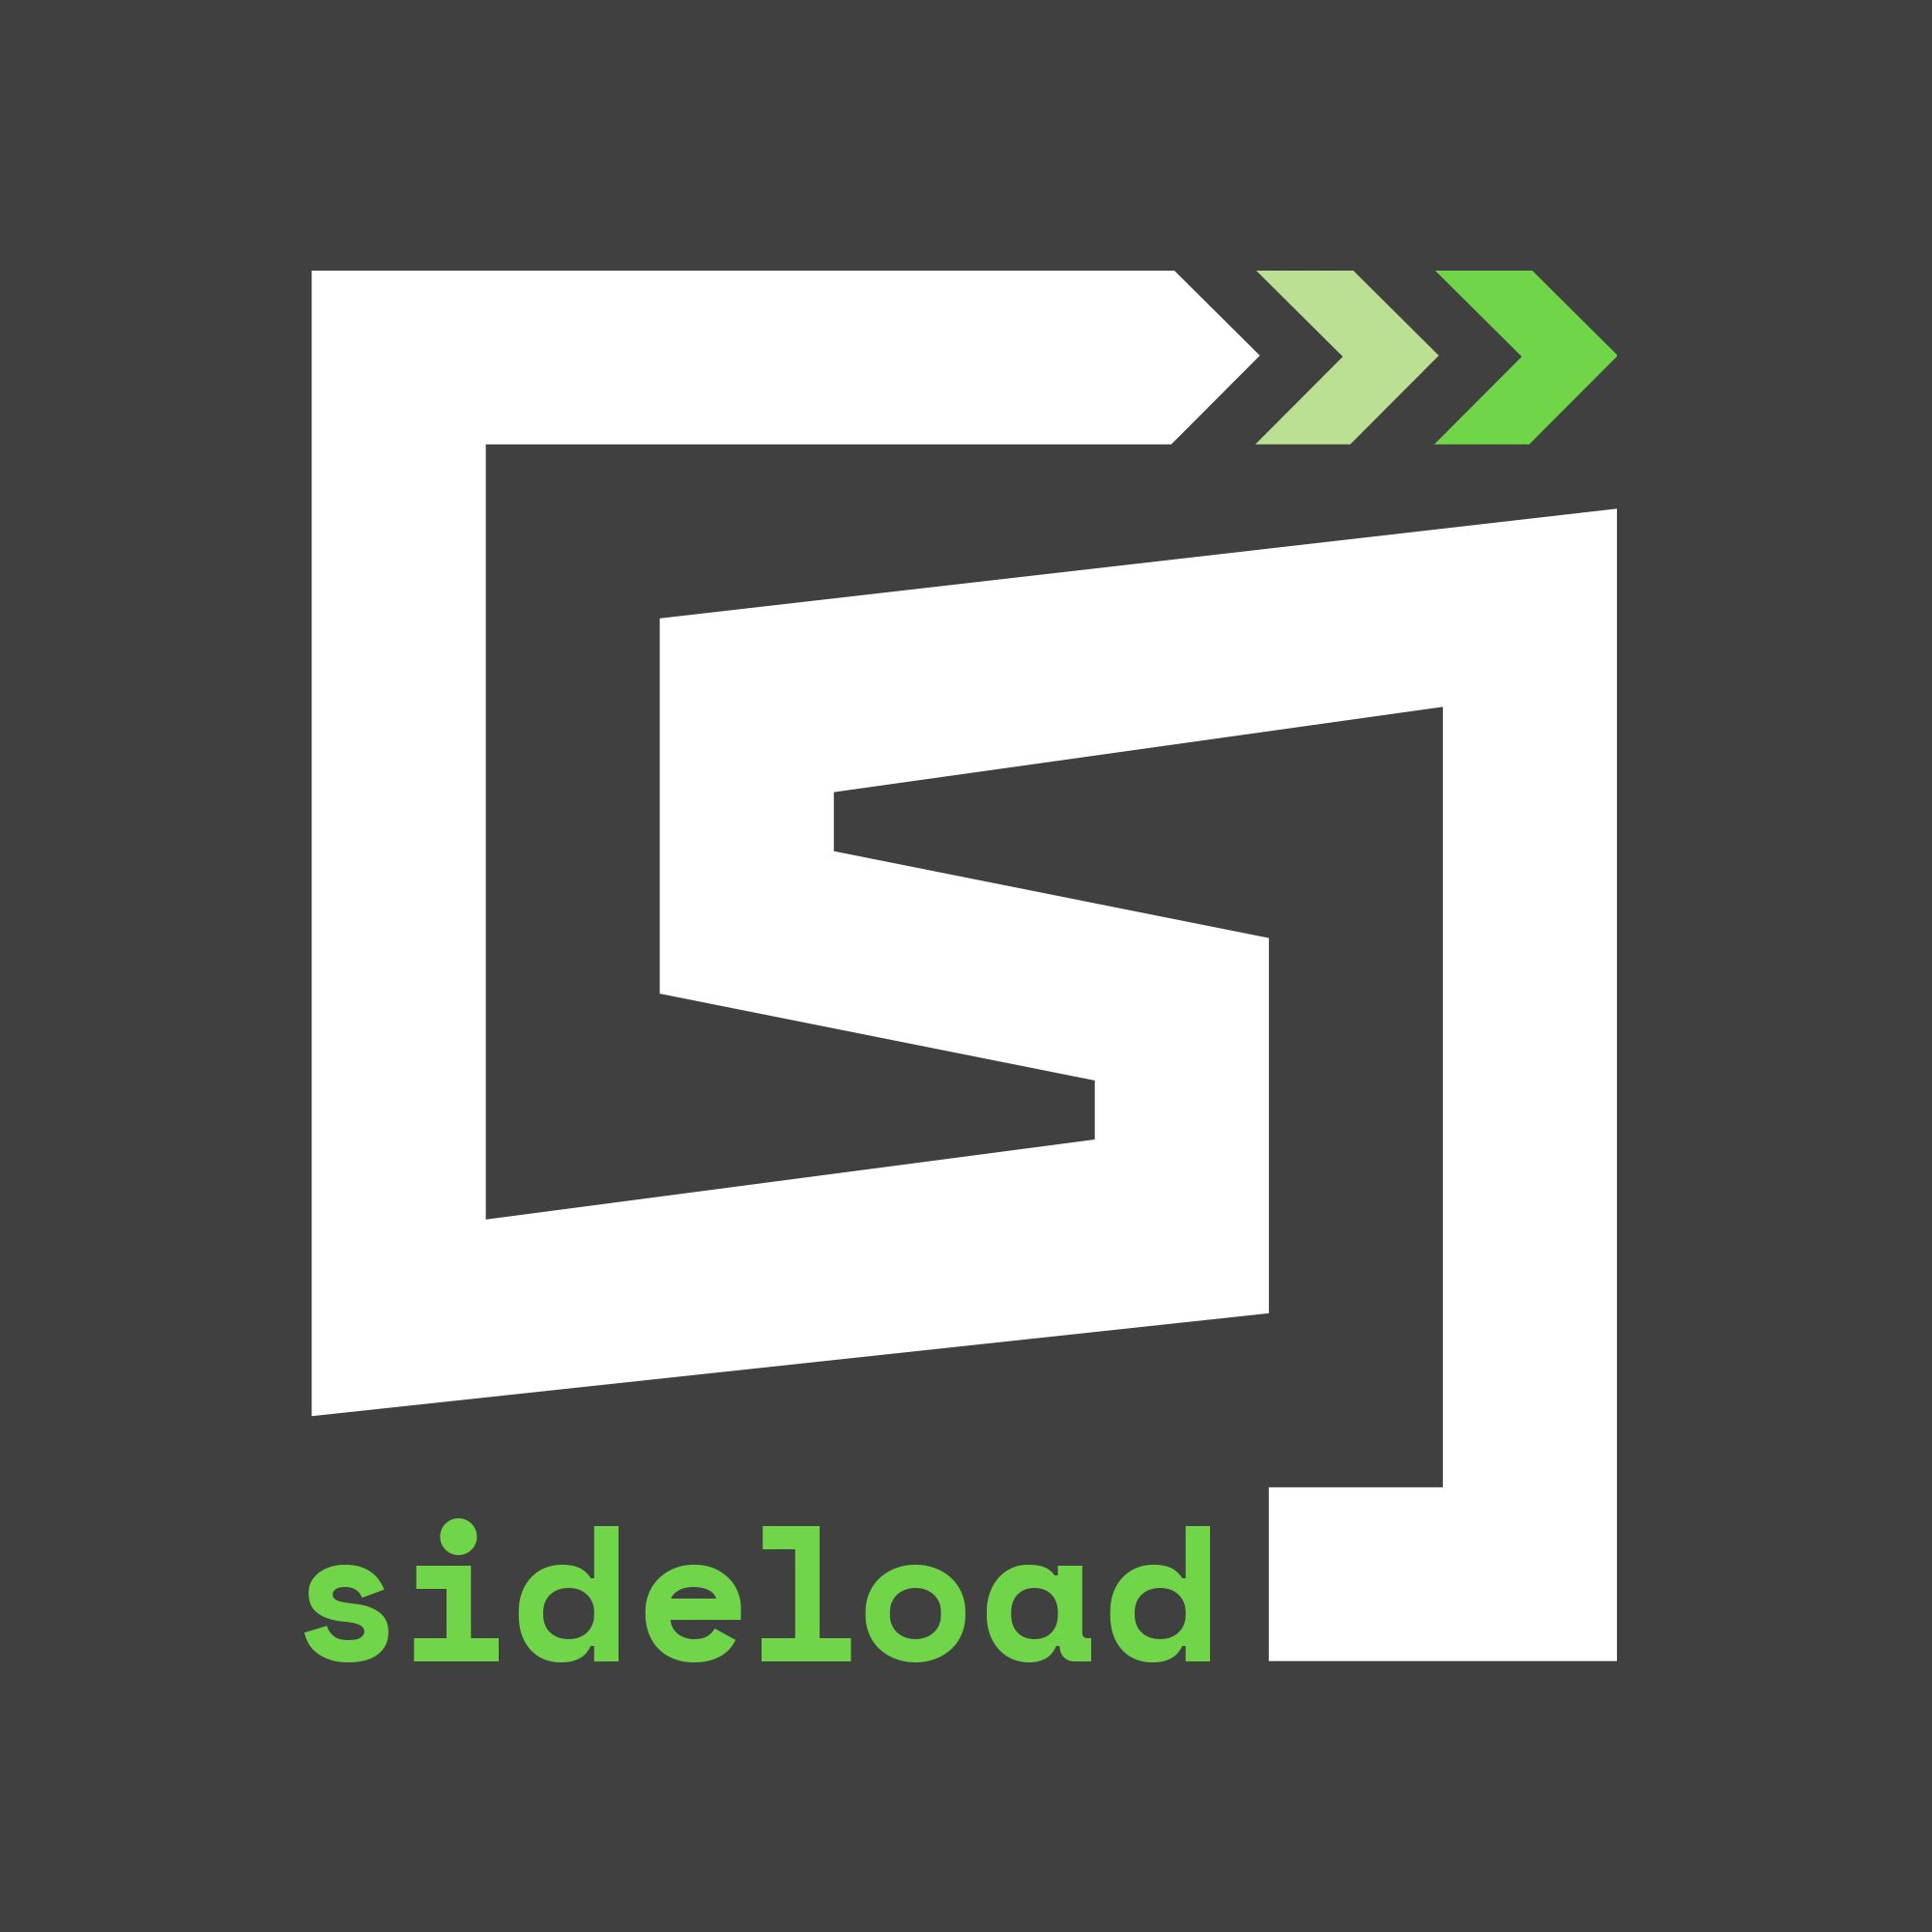 Sideload #33 – Turbo-charged networks and folding phones: MWC 2019 insights